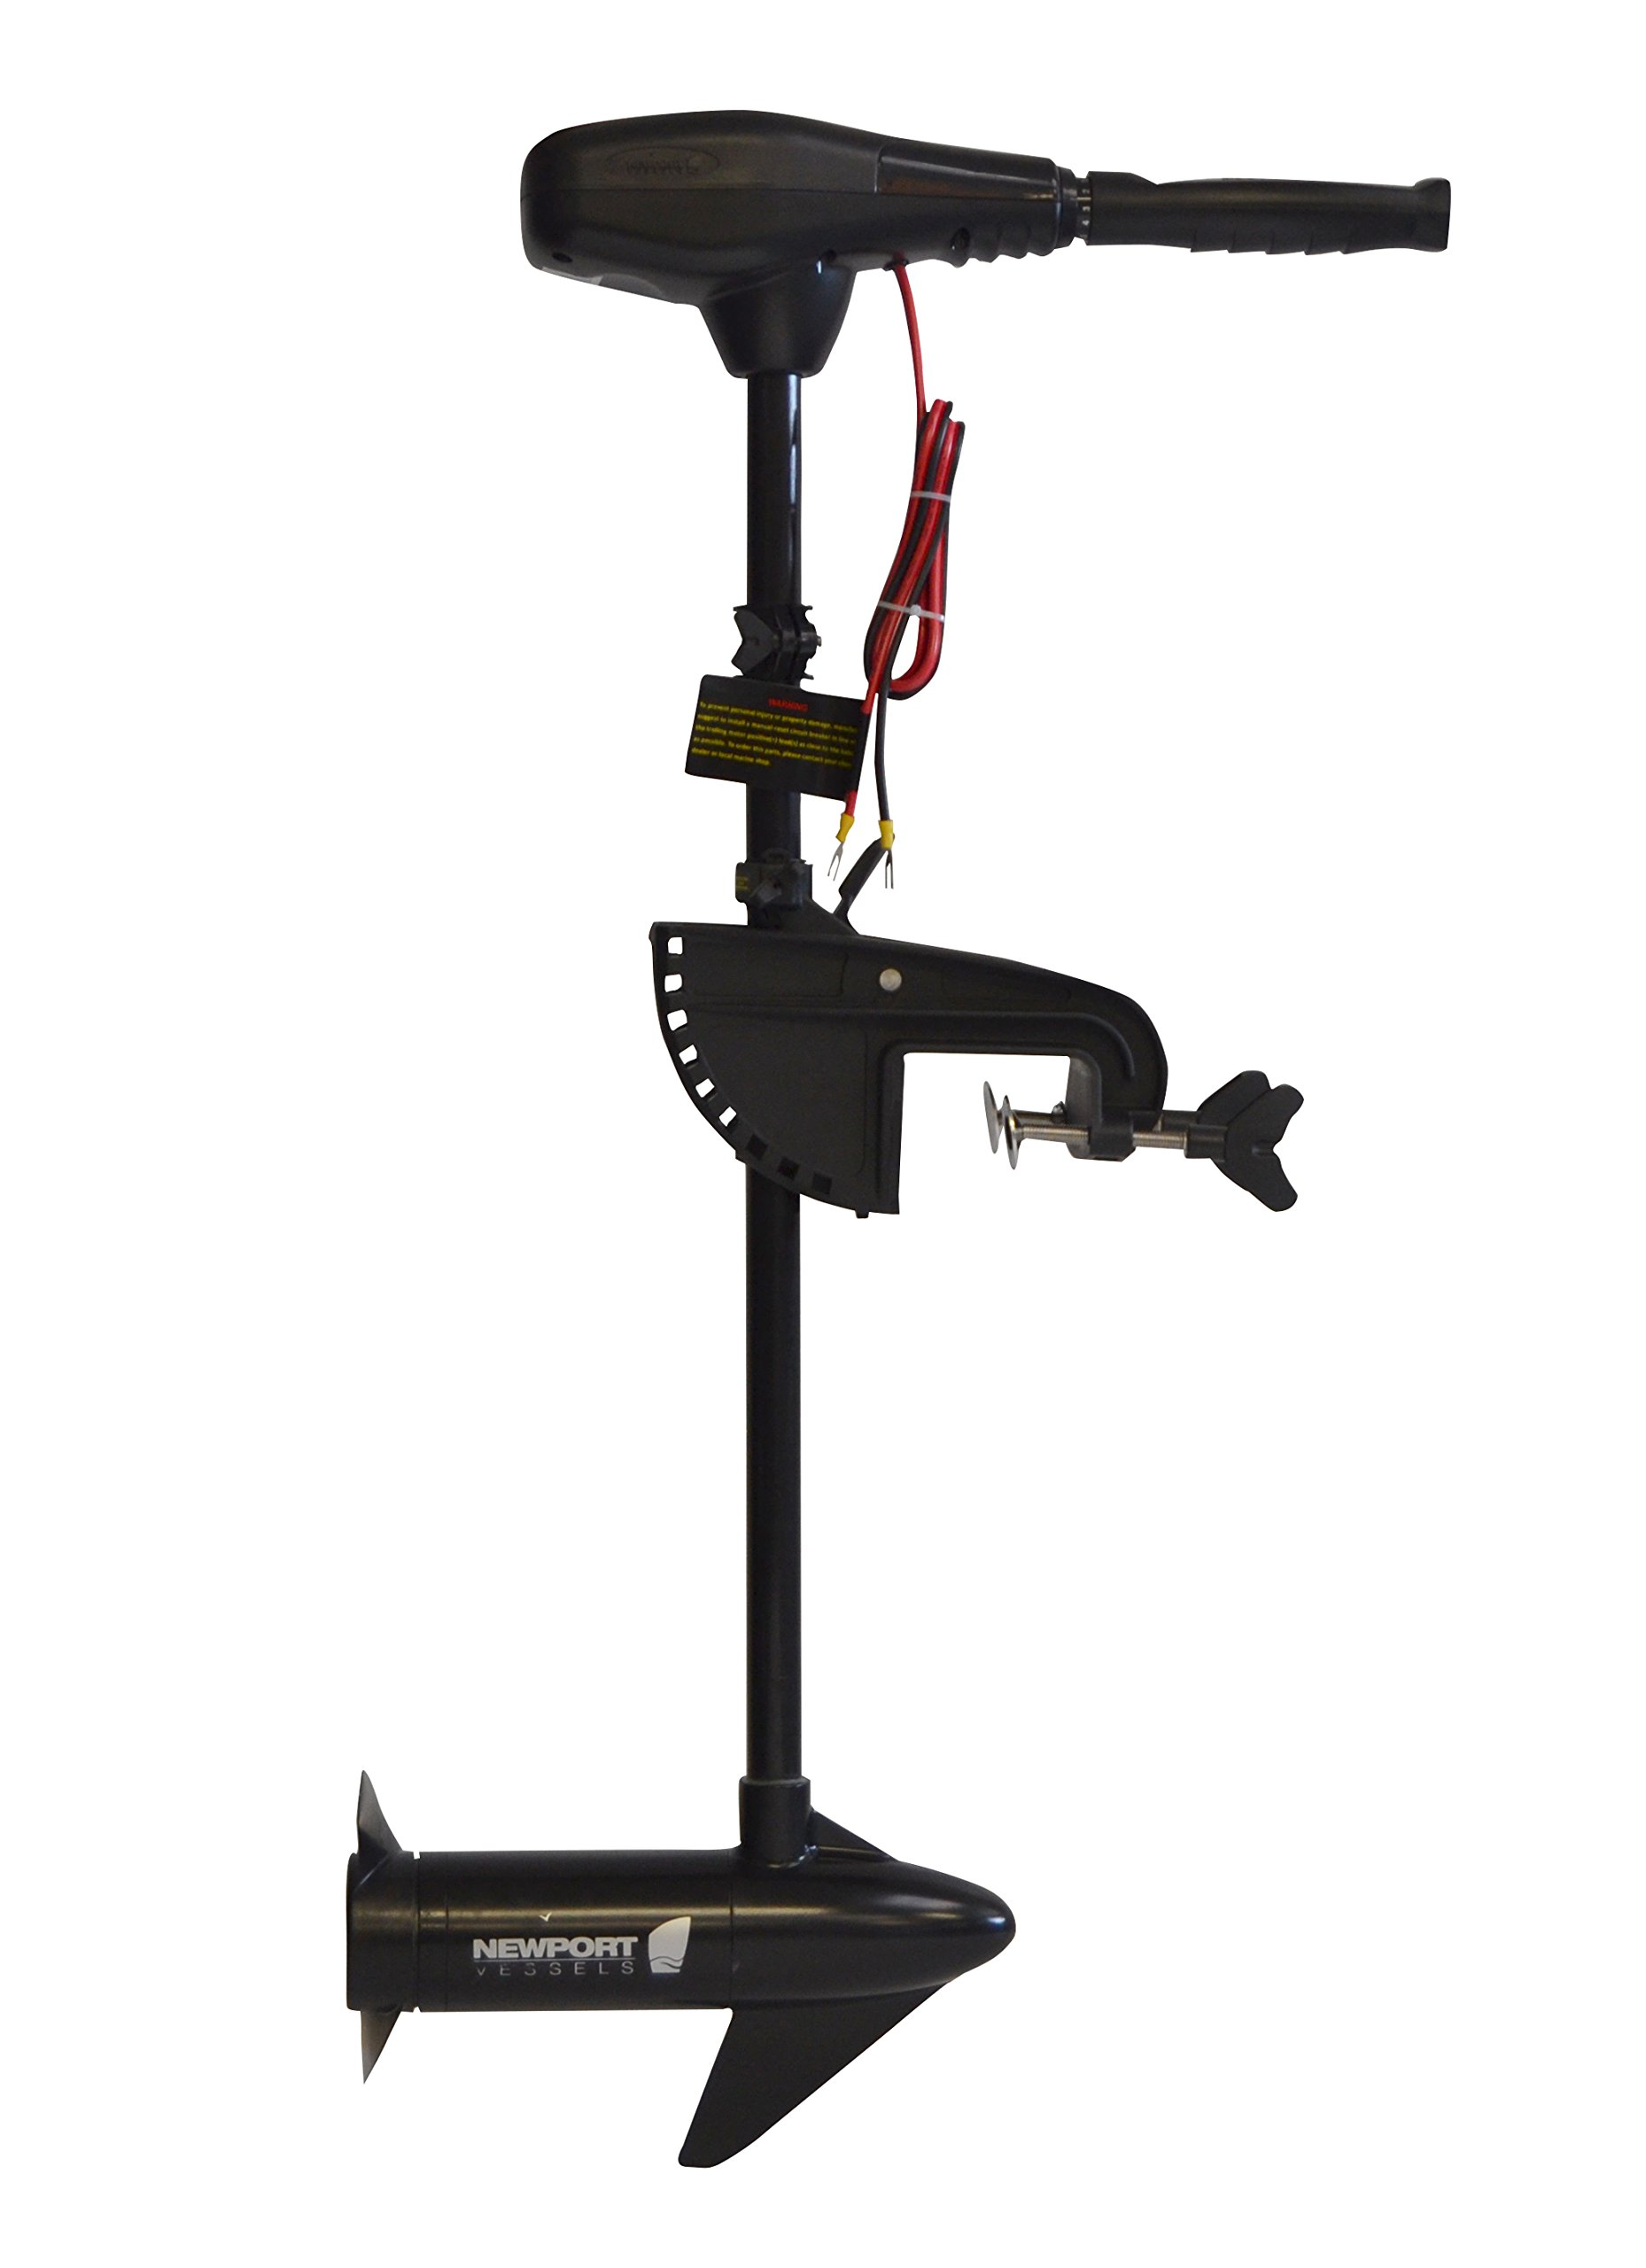 Newport Vessels NV-Series 36 lb. Thrust Saltwater Transom Mounted Electric Trolling Motor with 30'' Shaft by Newport Vessels